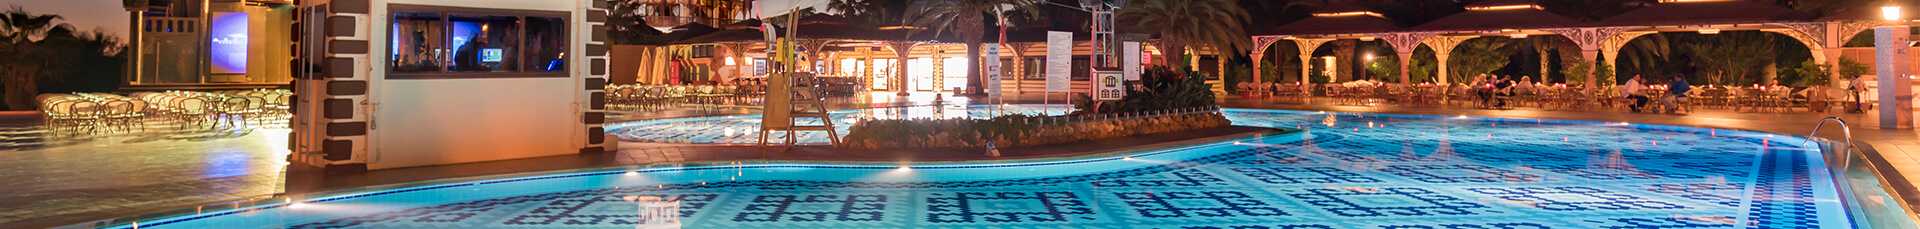 Ali Bey Club Manavgat - Pools